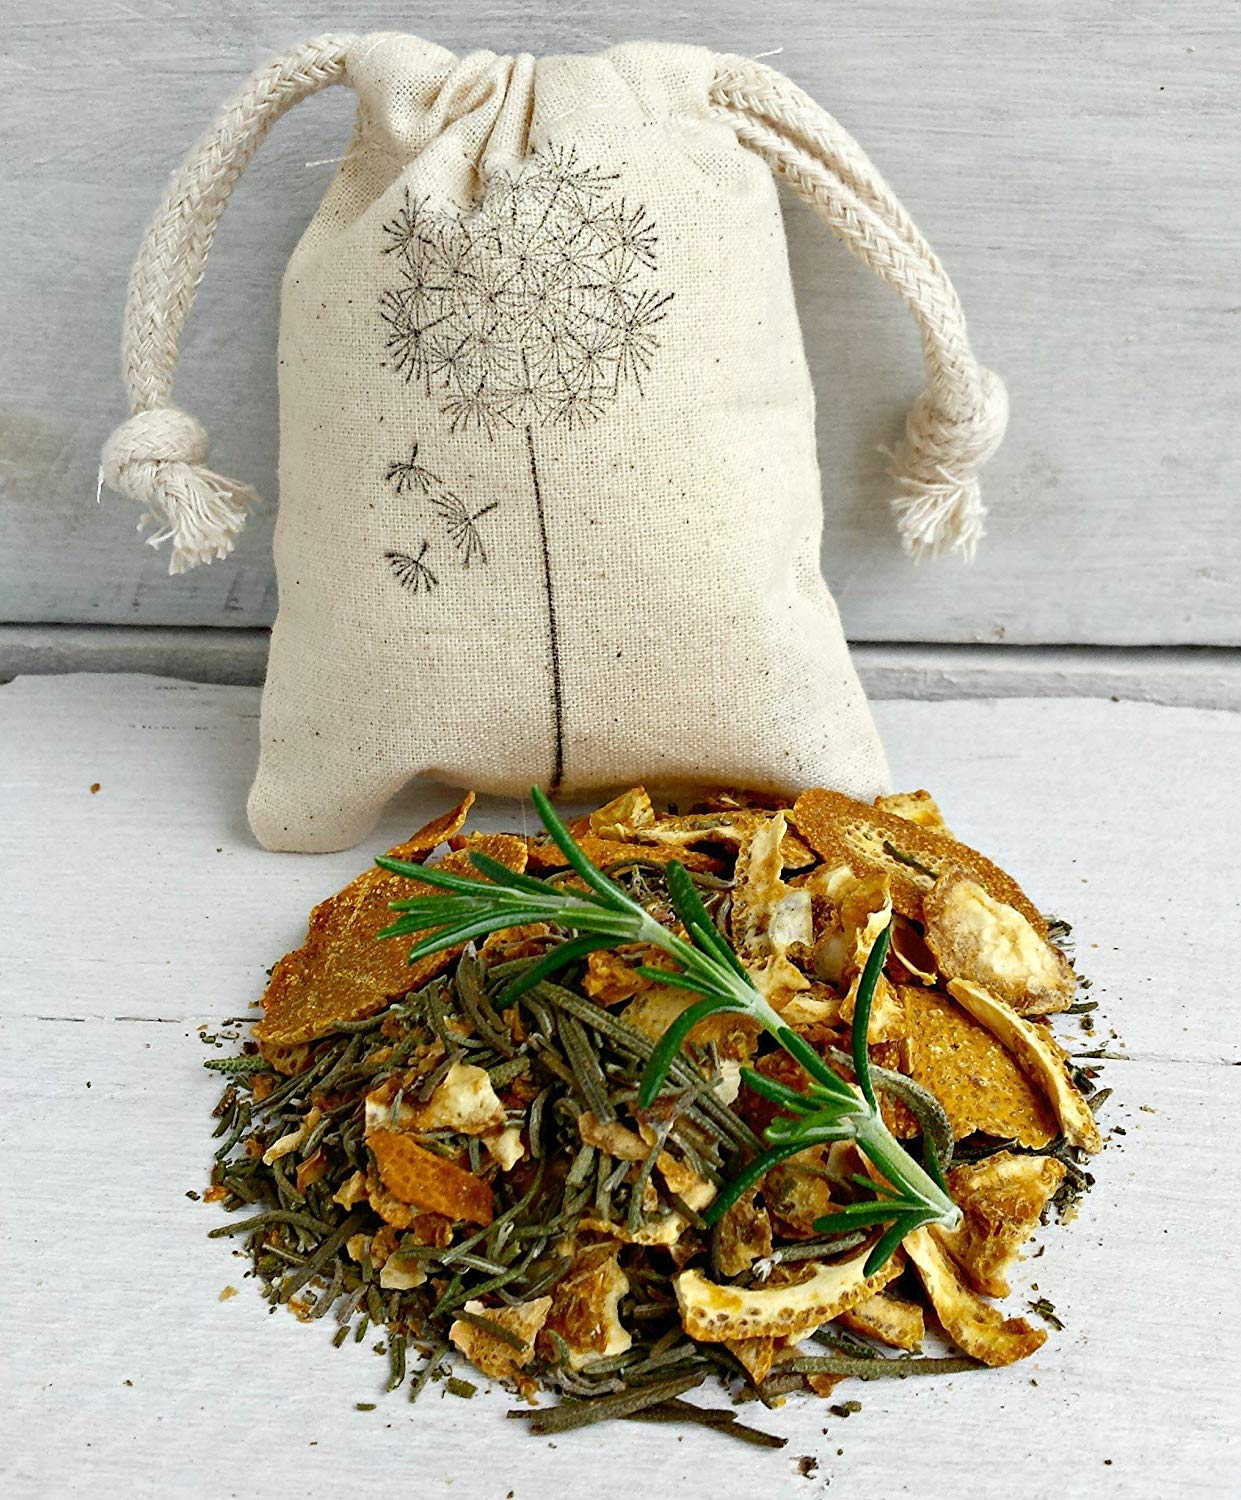 Rosemary Citrus Sachet | Rosemary Scented Sachets | Aromatherapy Sachets | Rosemary Sachet Bags | Wedding Favors | Rosemary Scented Drawer